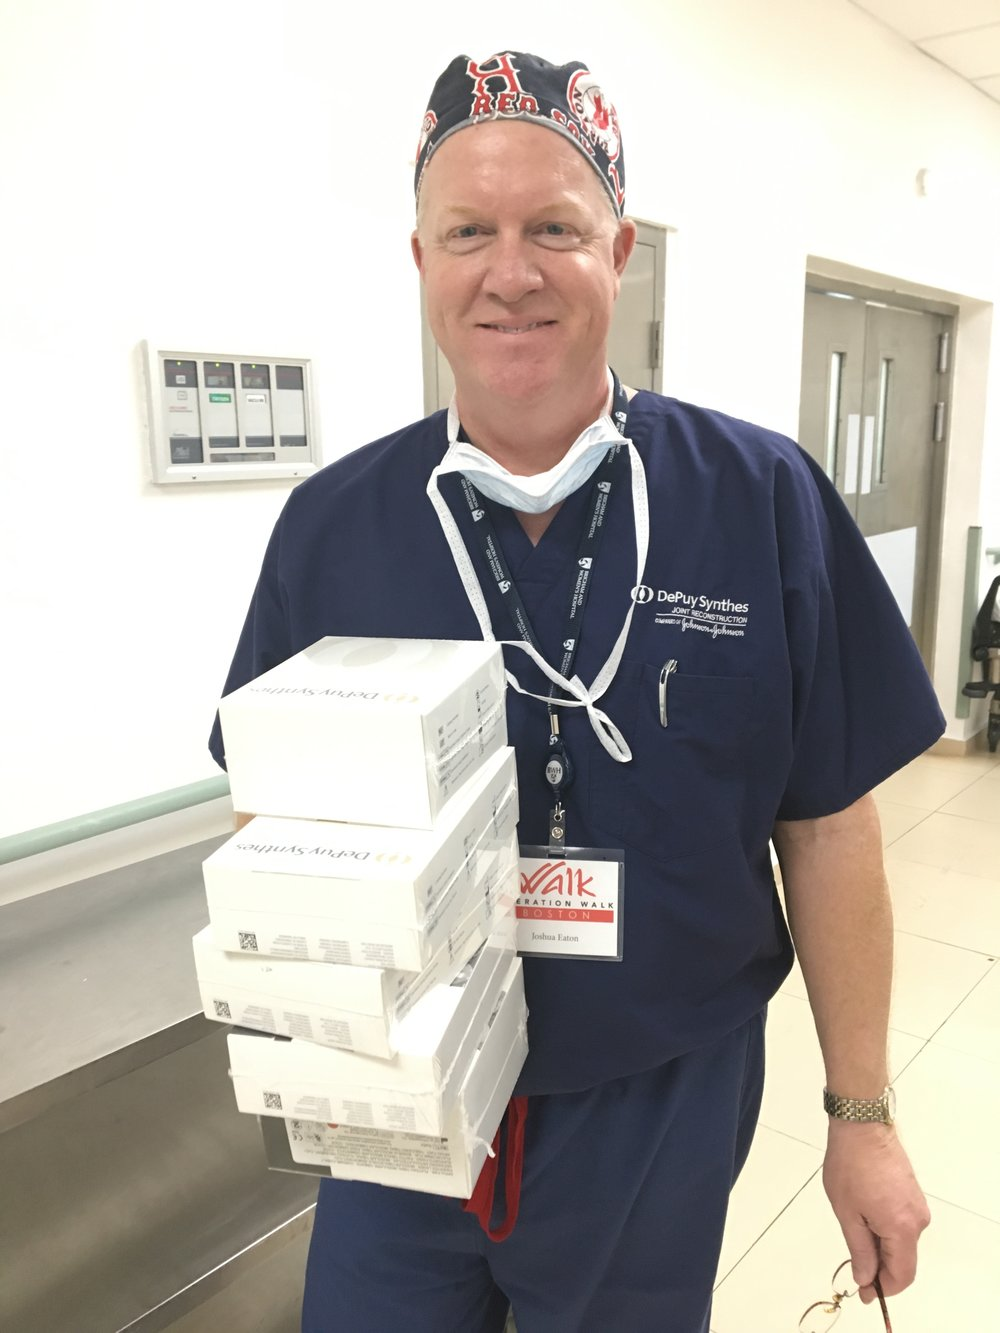 Josh with Johnson & Johnson (DePuy Synthes)helping to deliver the implants to operating room.